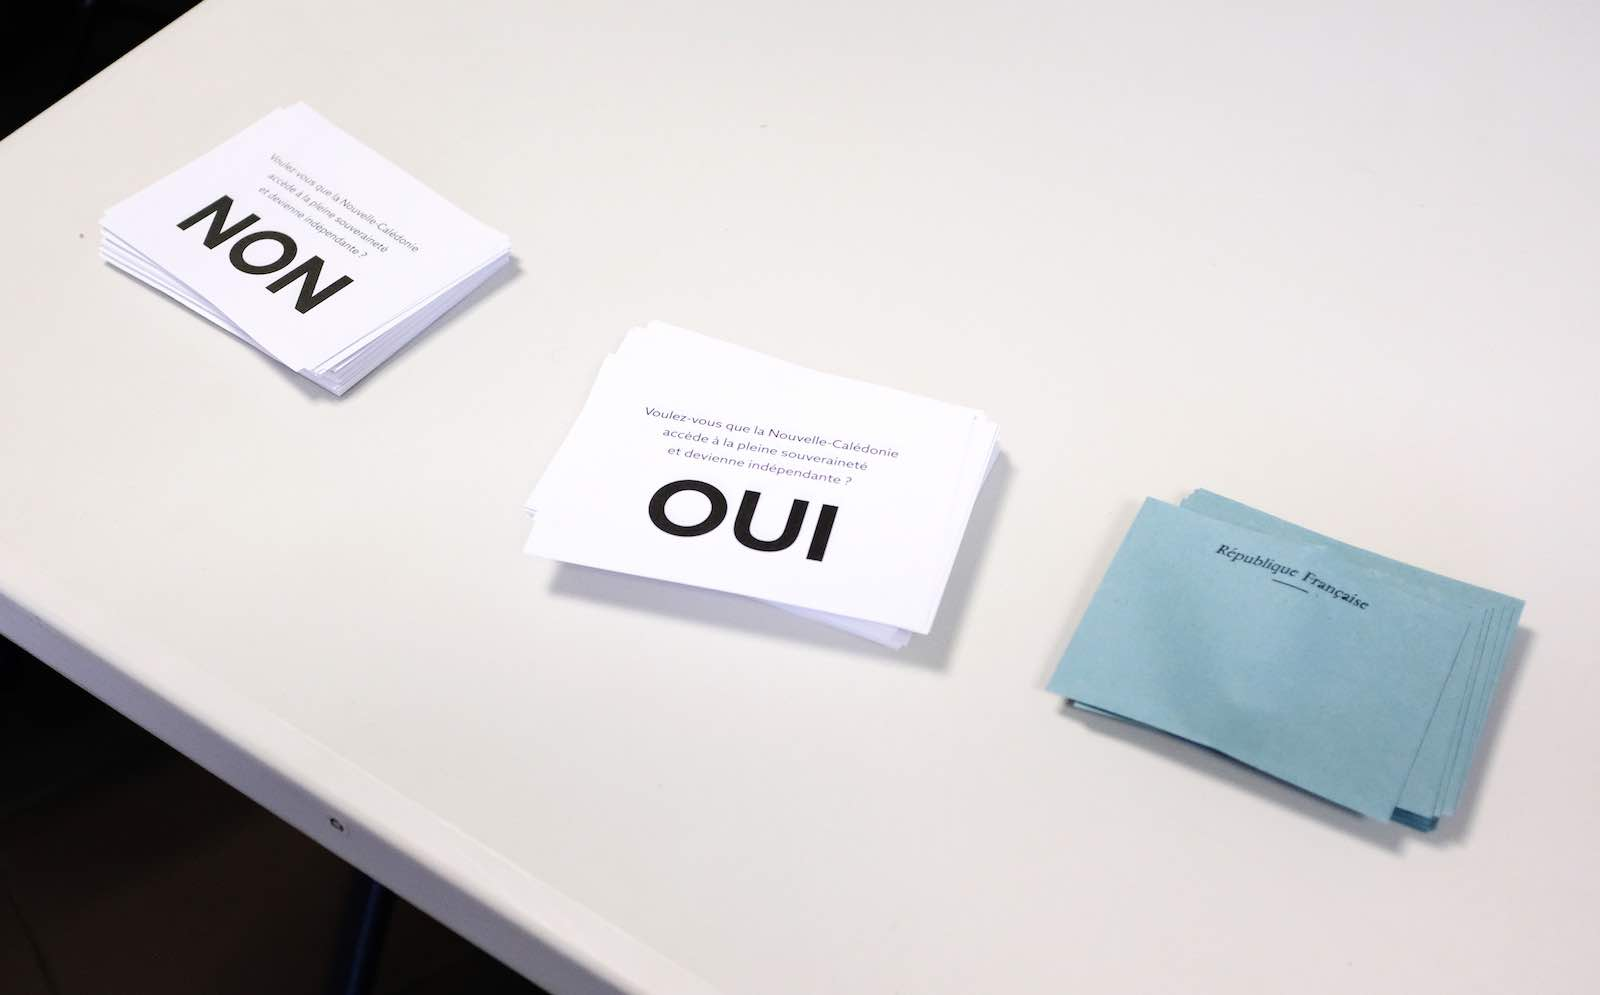 Voting forms in the referendum on independence on the French South Pacific territory of New Caledonia in Noumea on 4 October (Theo Rouby/AFP via Getty Images)